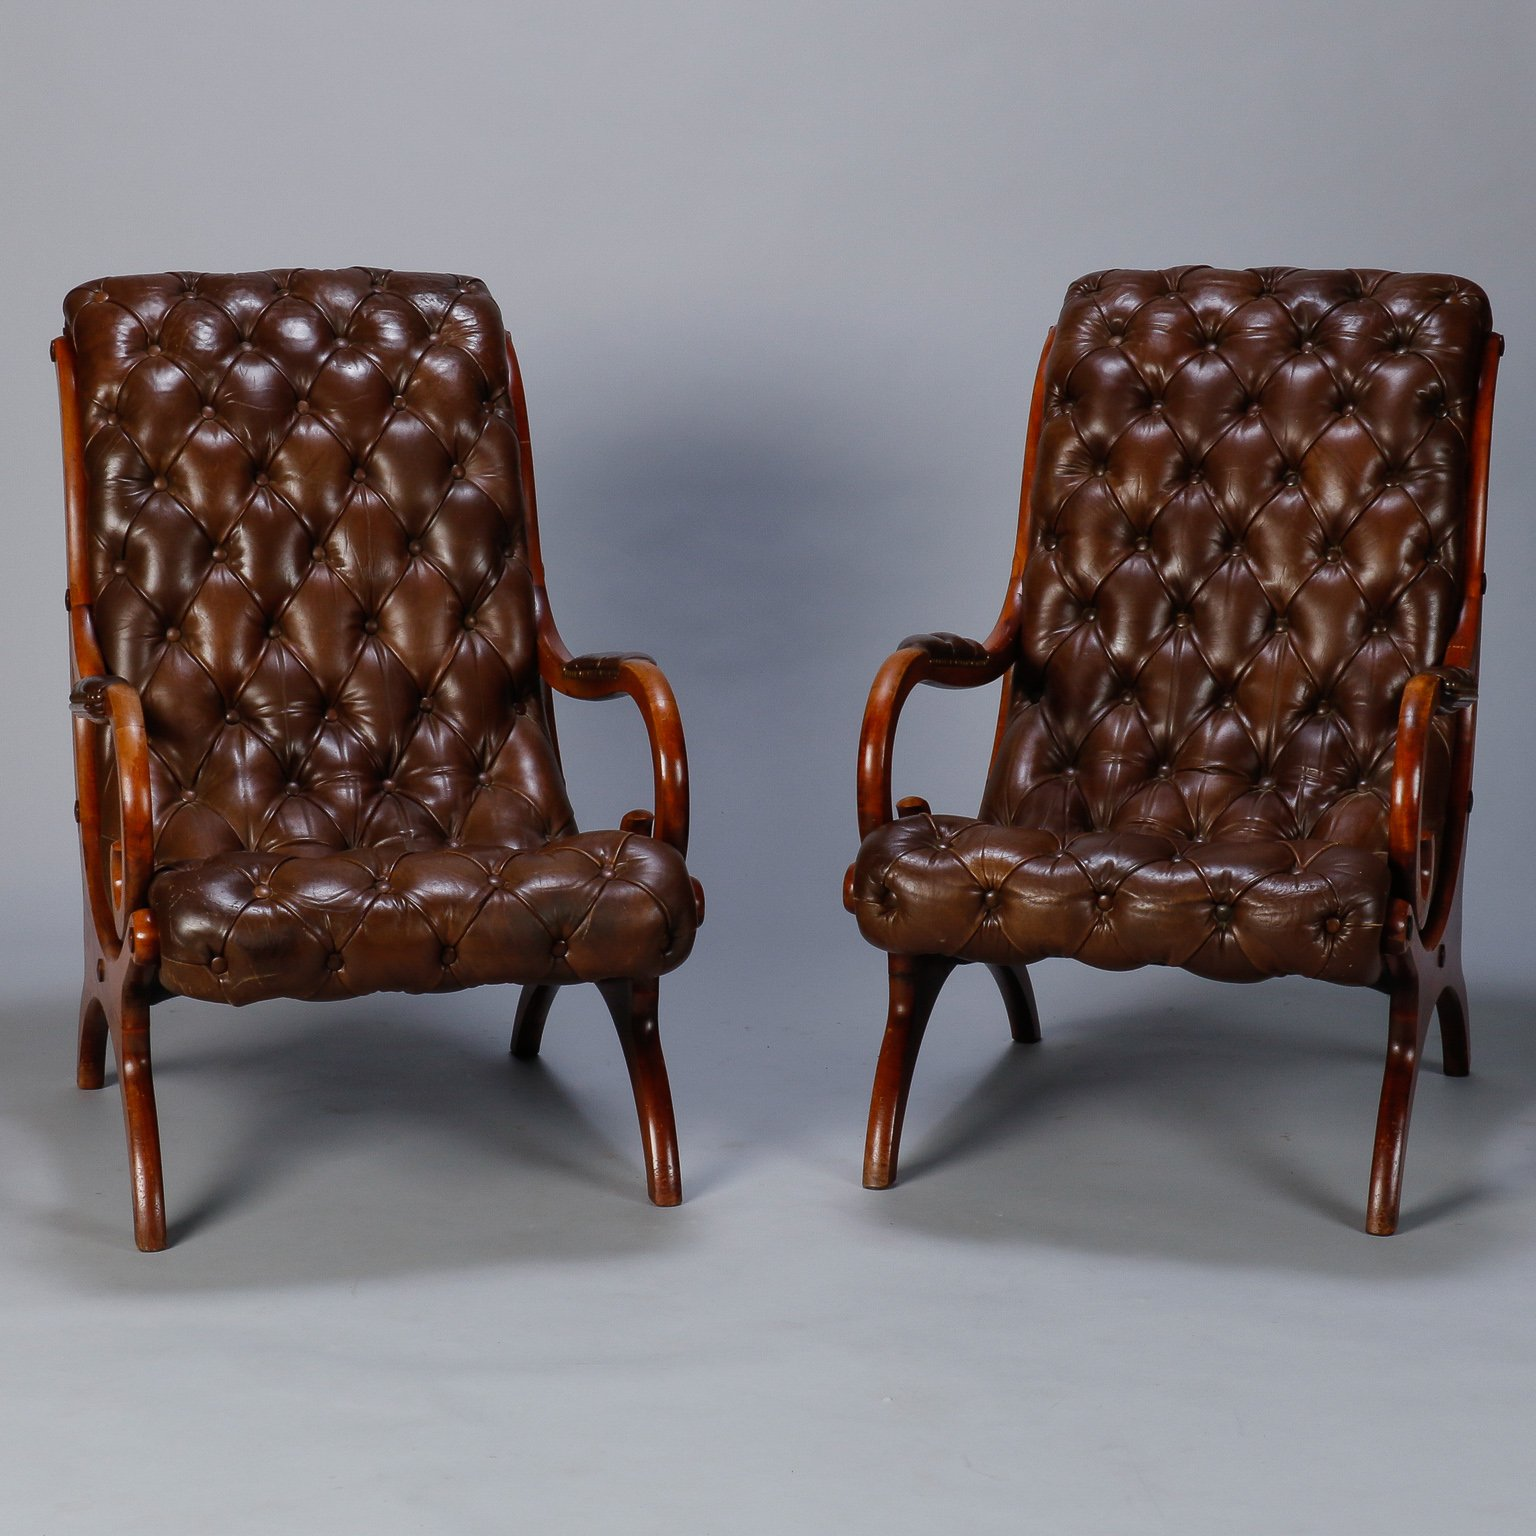 Cool Pair French Mid Century Tufted Leather Arm Chairs Item 7566 Pabps2019 Chair Design Images Pabps2019Com